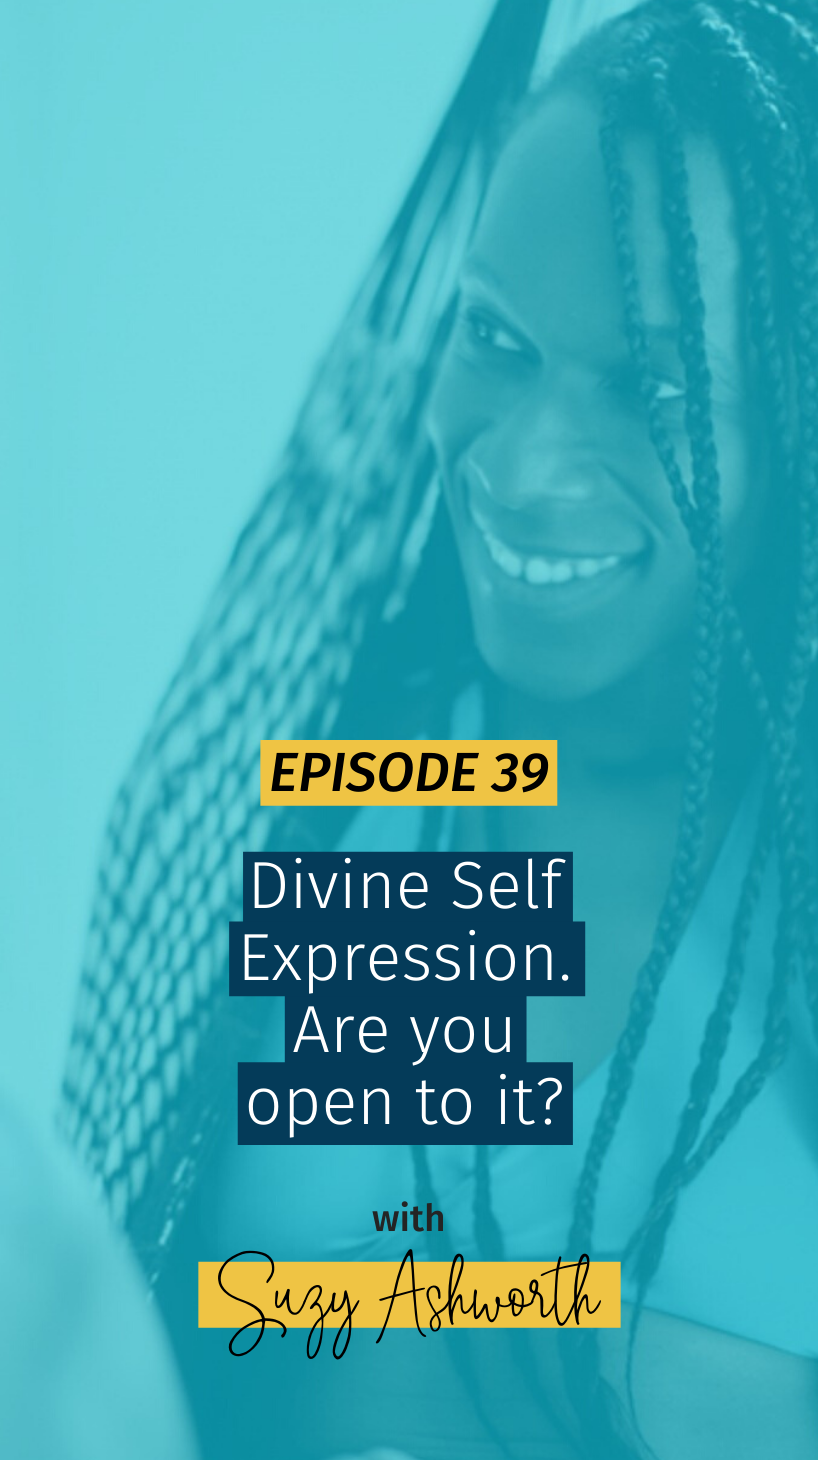 039 Divine Self Expression. Are you open to it?